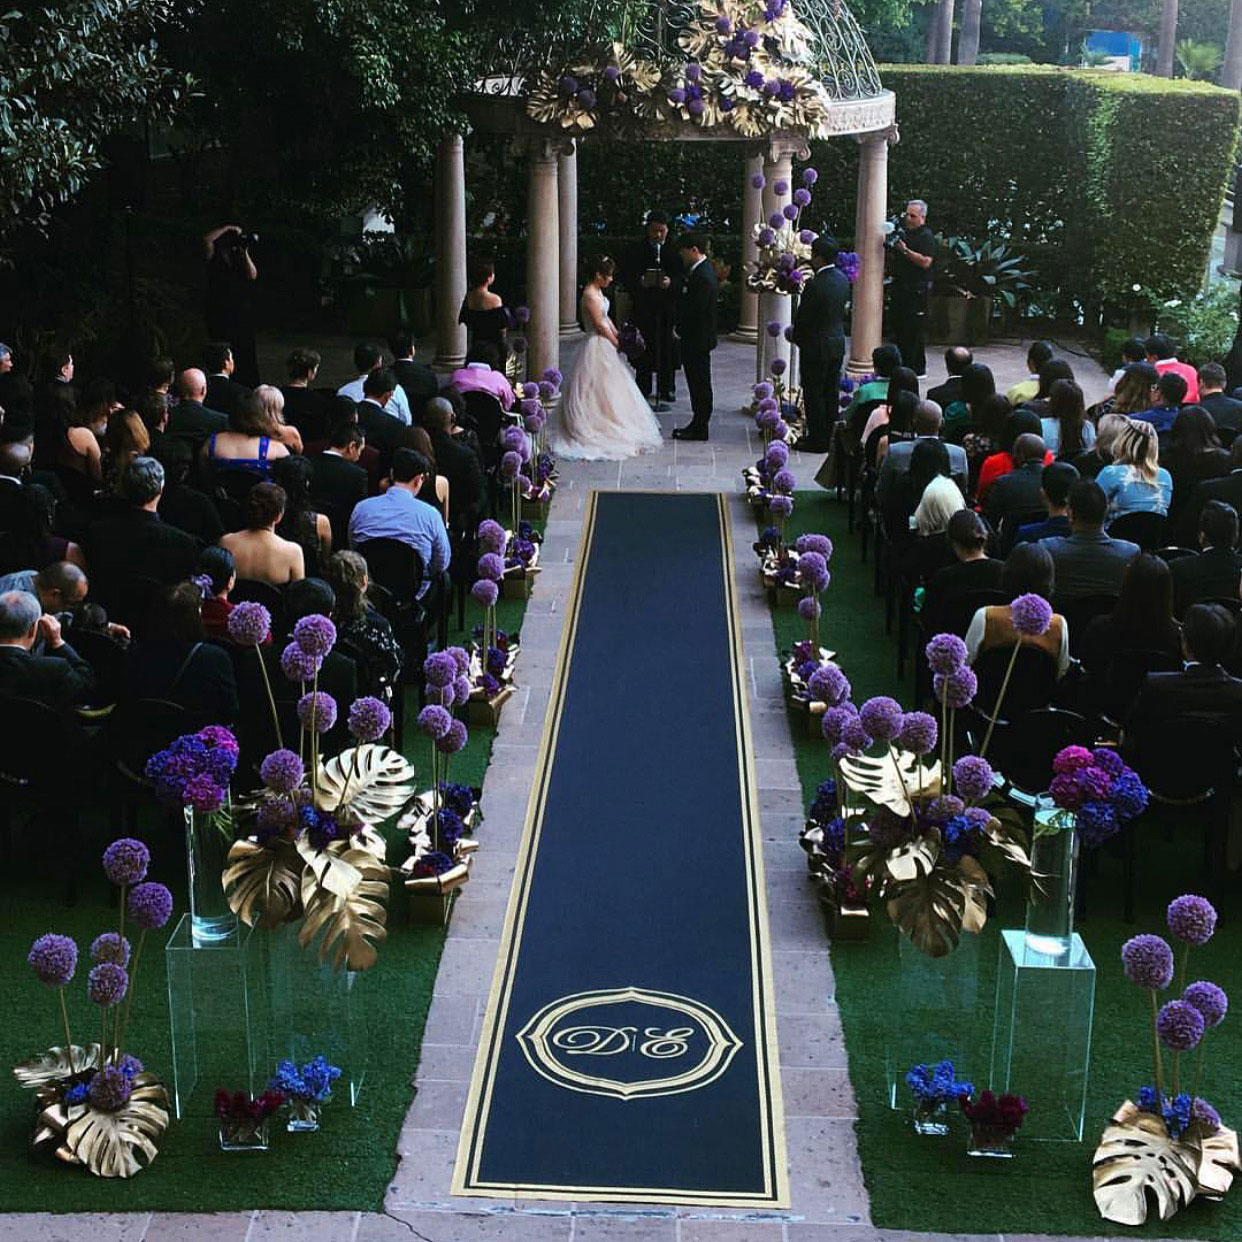 Dark aisle runner at ceremony from The Original Runner Company